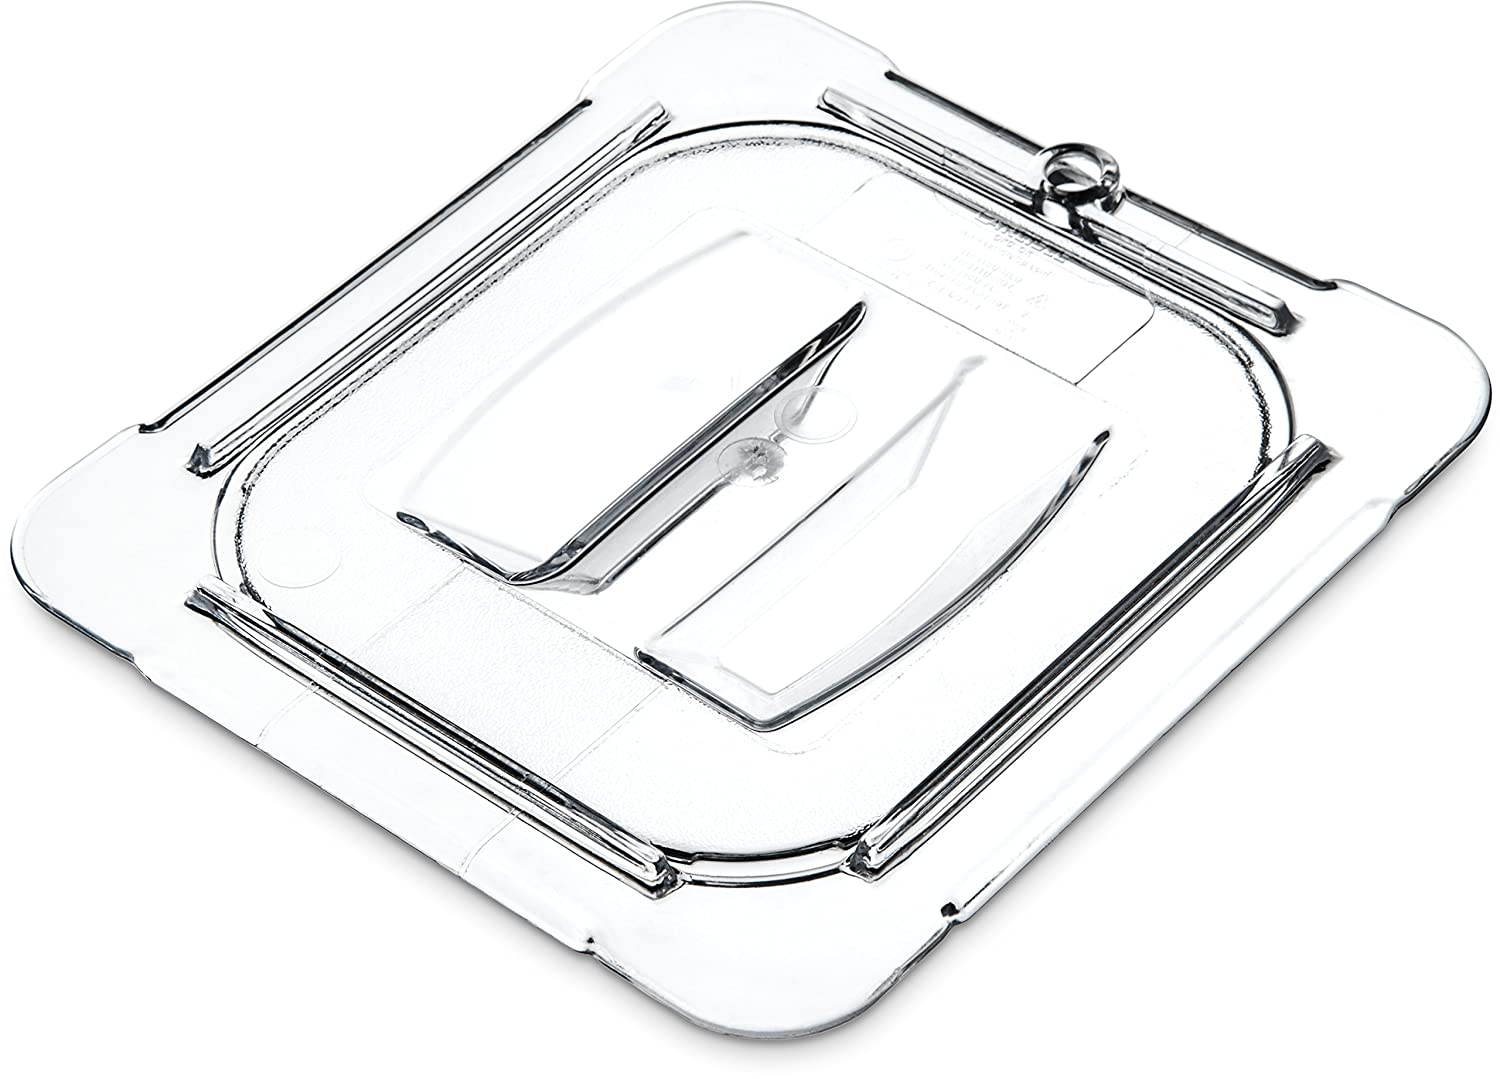 Carlisle 10310U07 StorPlus Sixth Size Polycarbonate Universal Handled Food Pan Lid, Clear